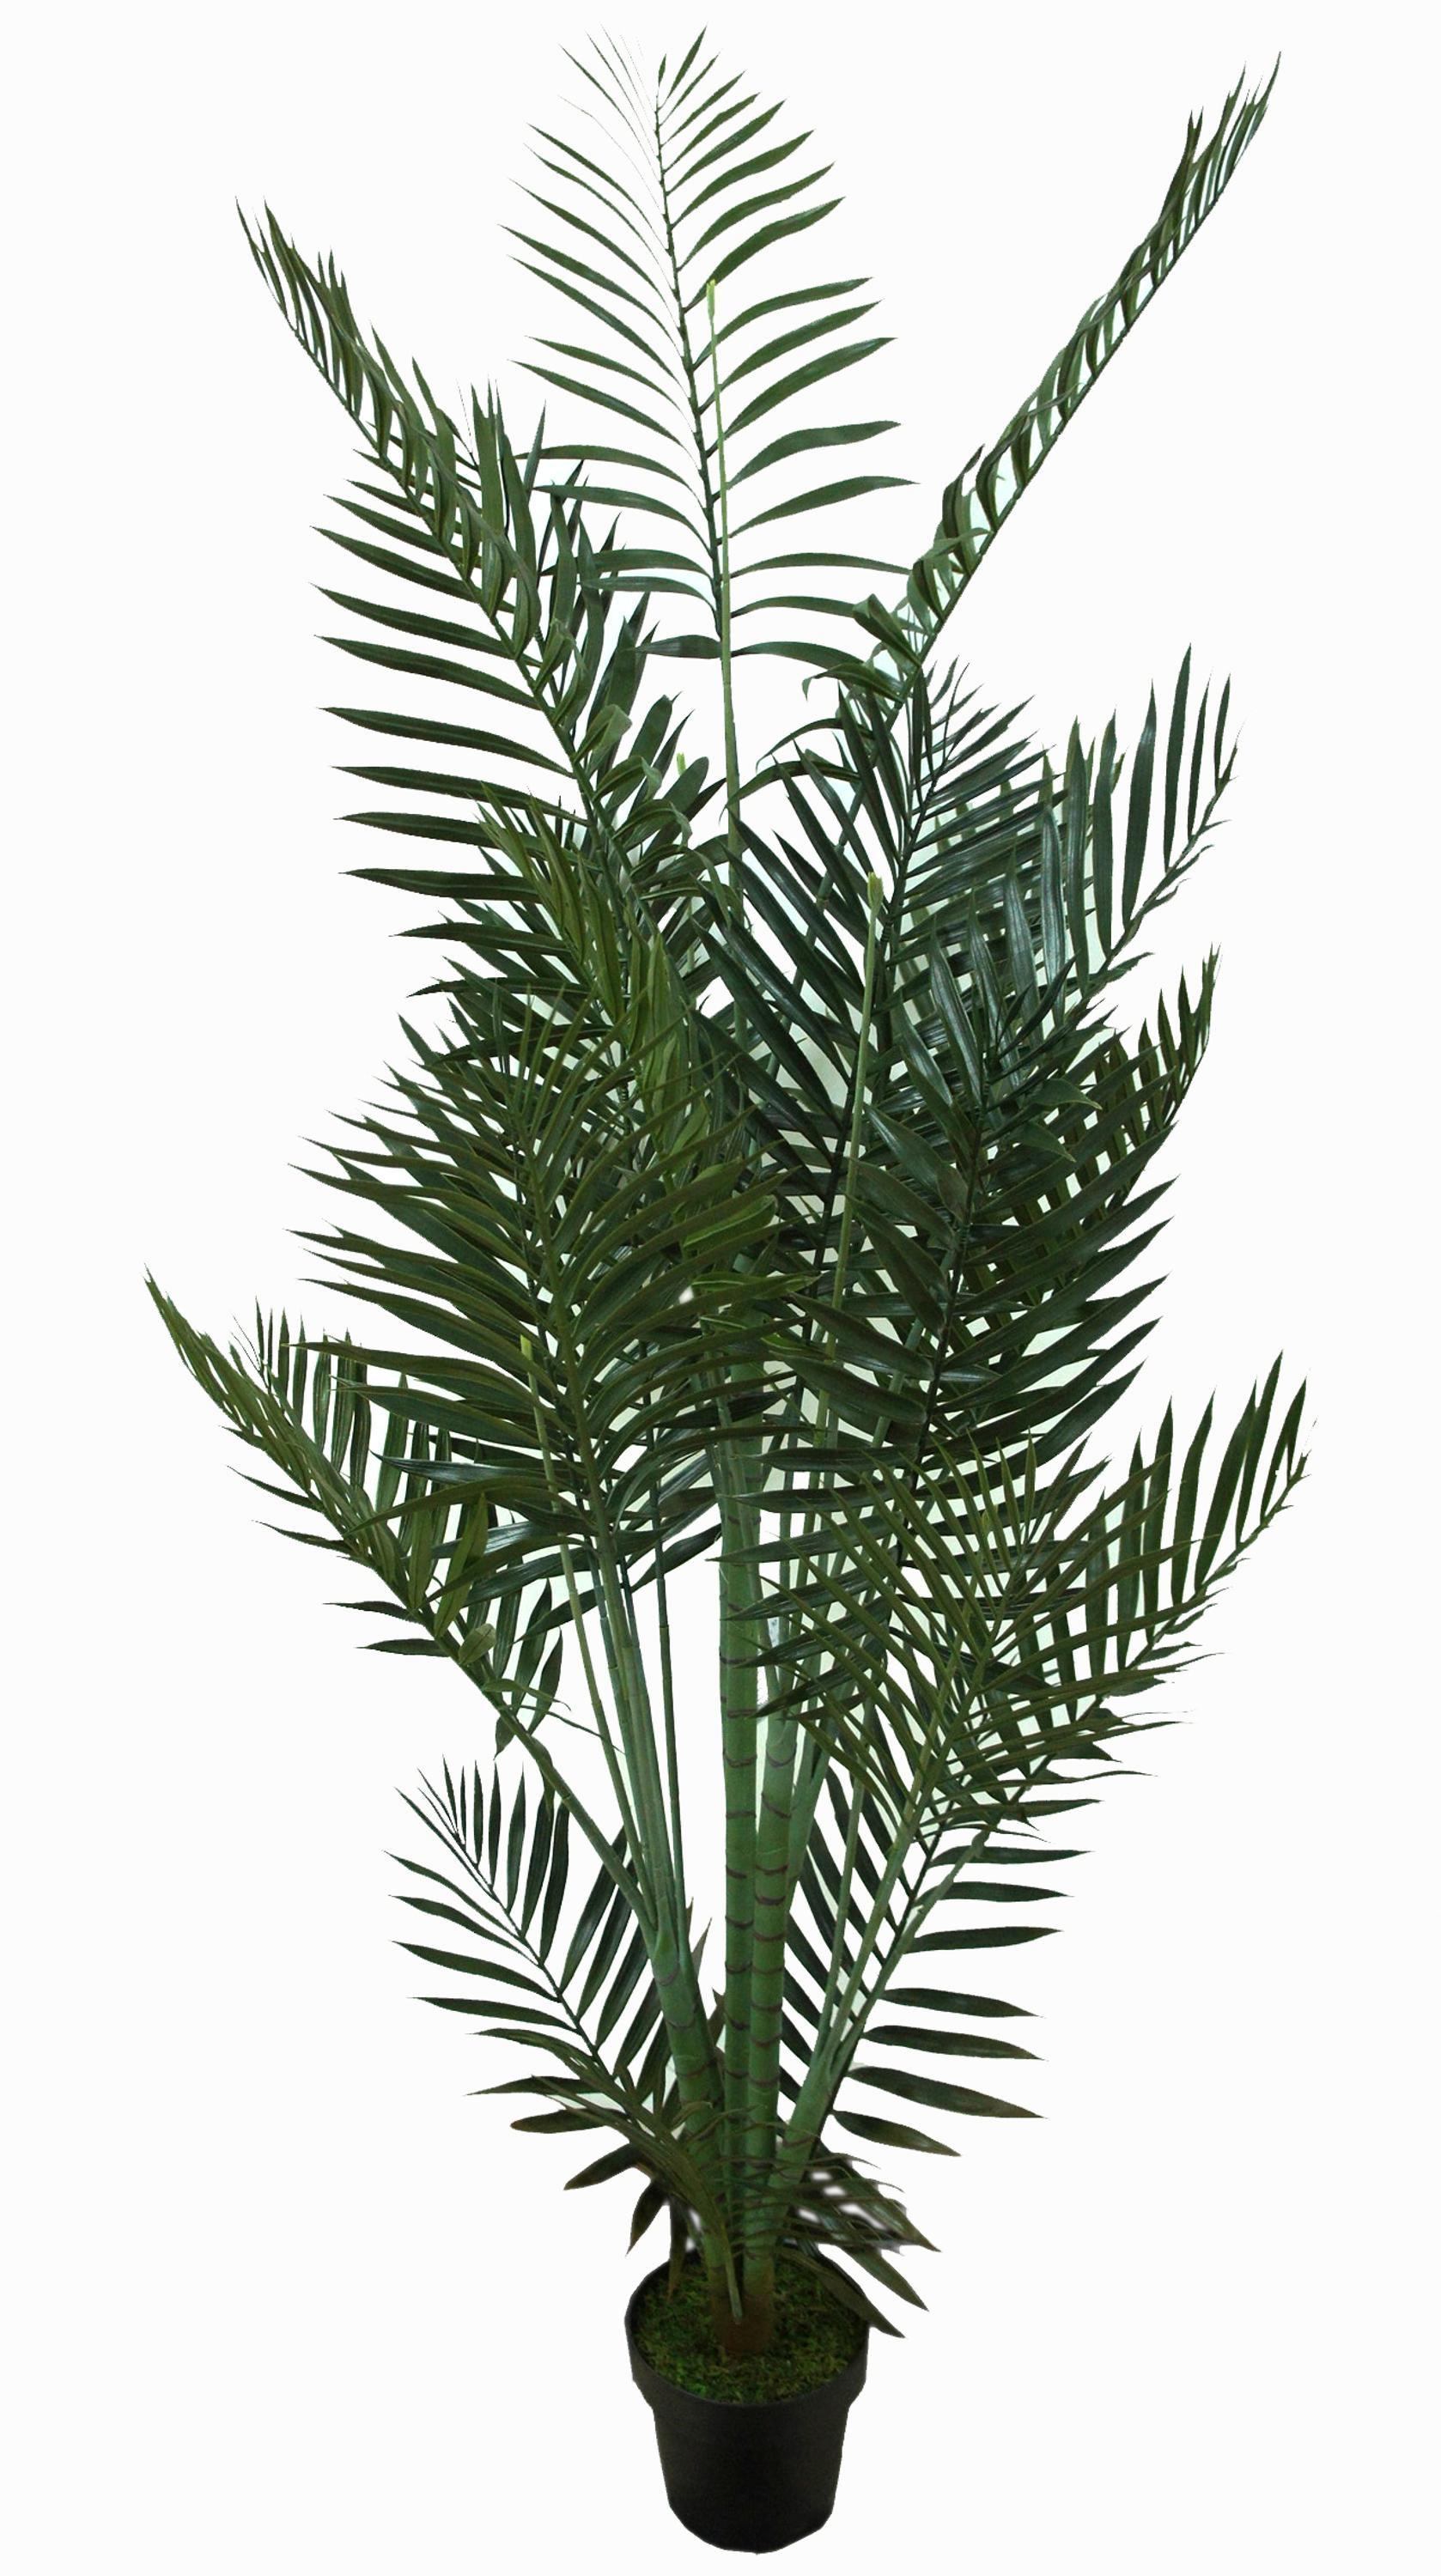 Artificial Chrysalidocarpus Lutescens Artificial Areca Palm Tree Potted Plants Artificial Chrysalidocarpus Lutescens Bonsai Synthetic Indoor Coconut Tree Buy Bonsai Tree Artificial Palm